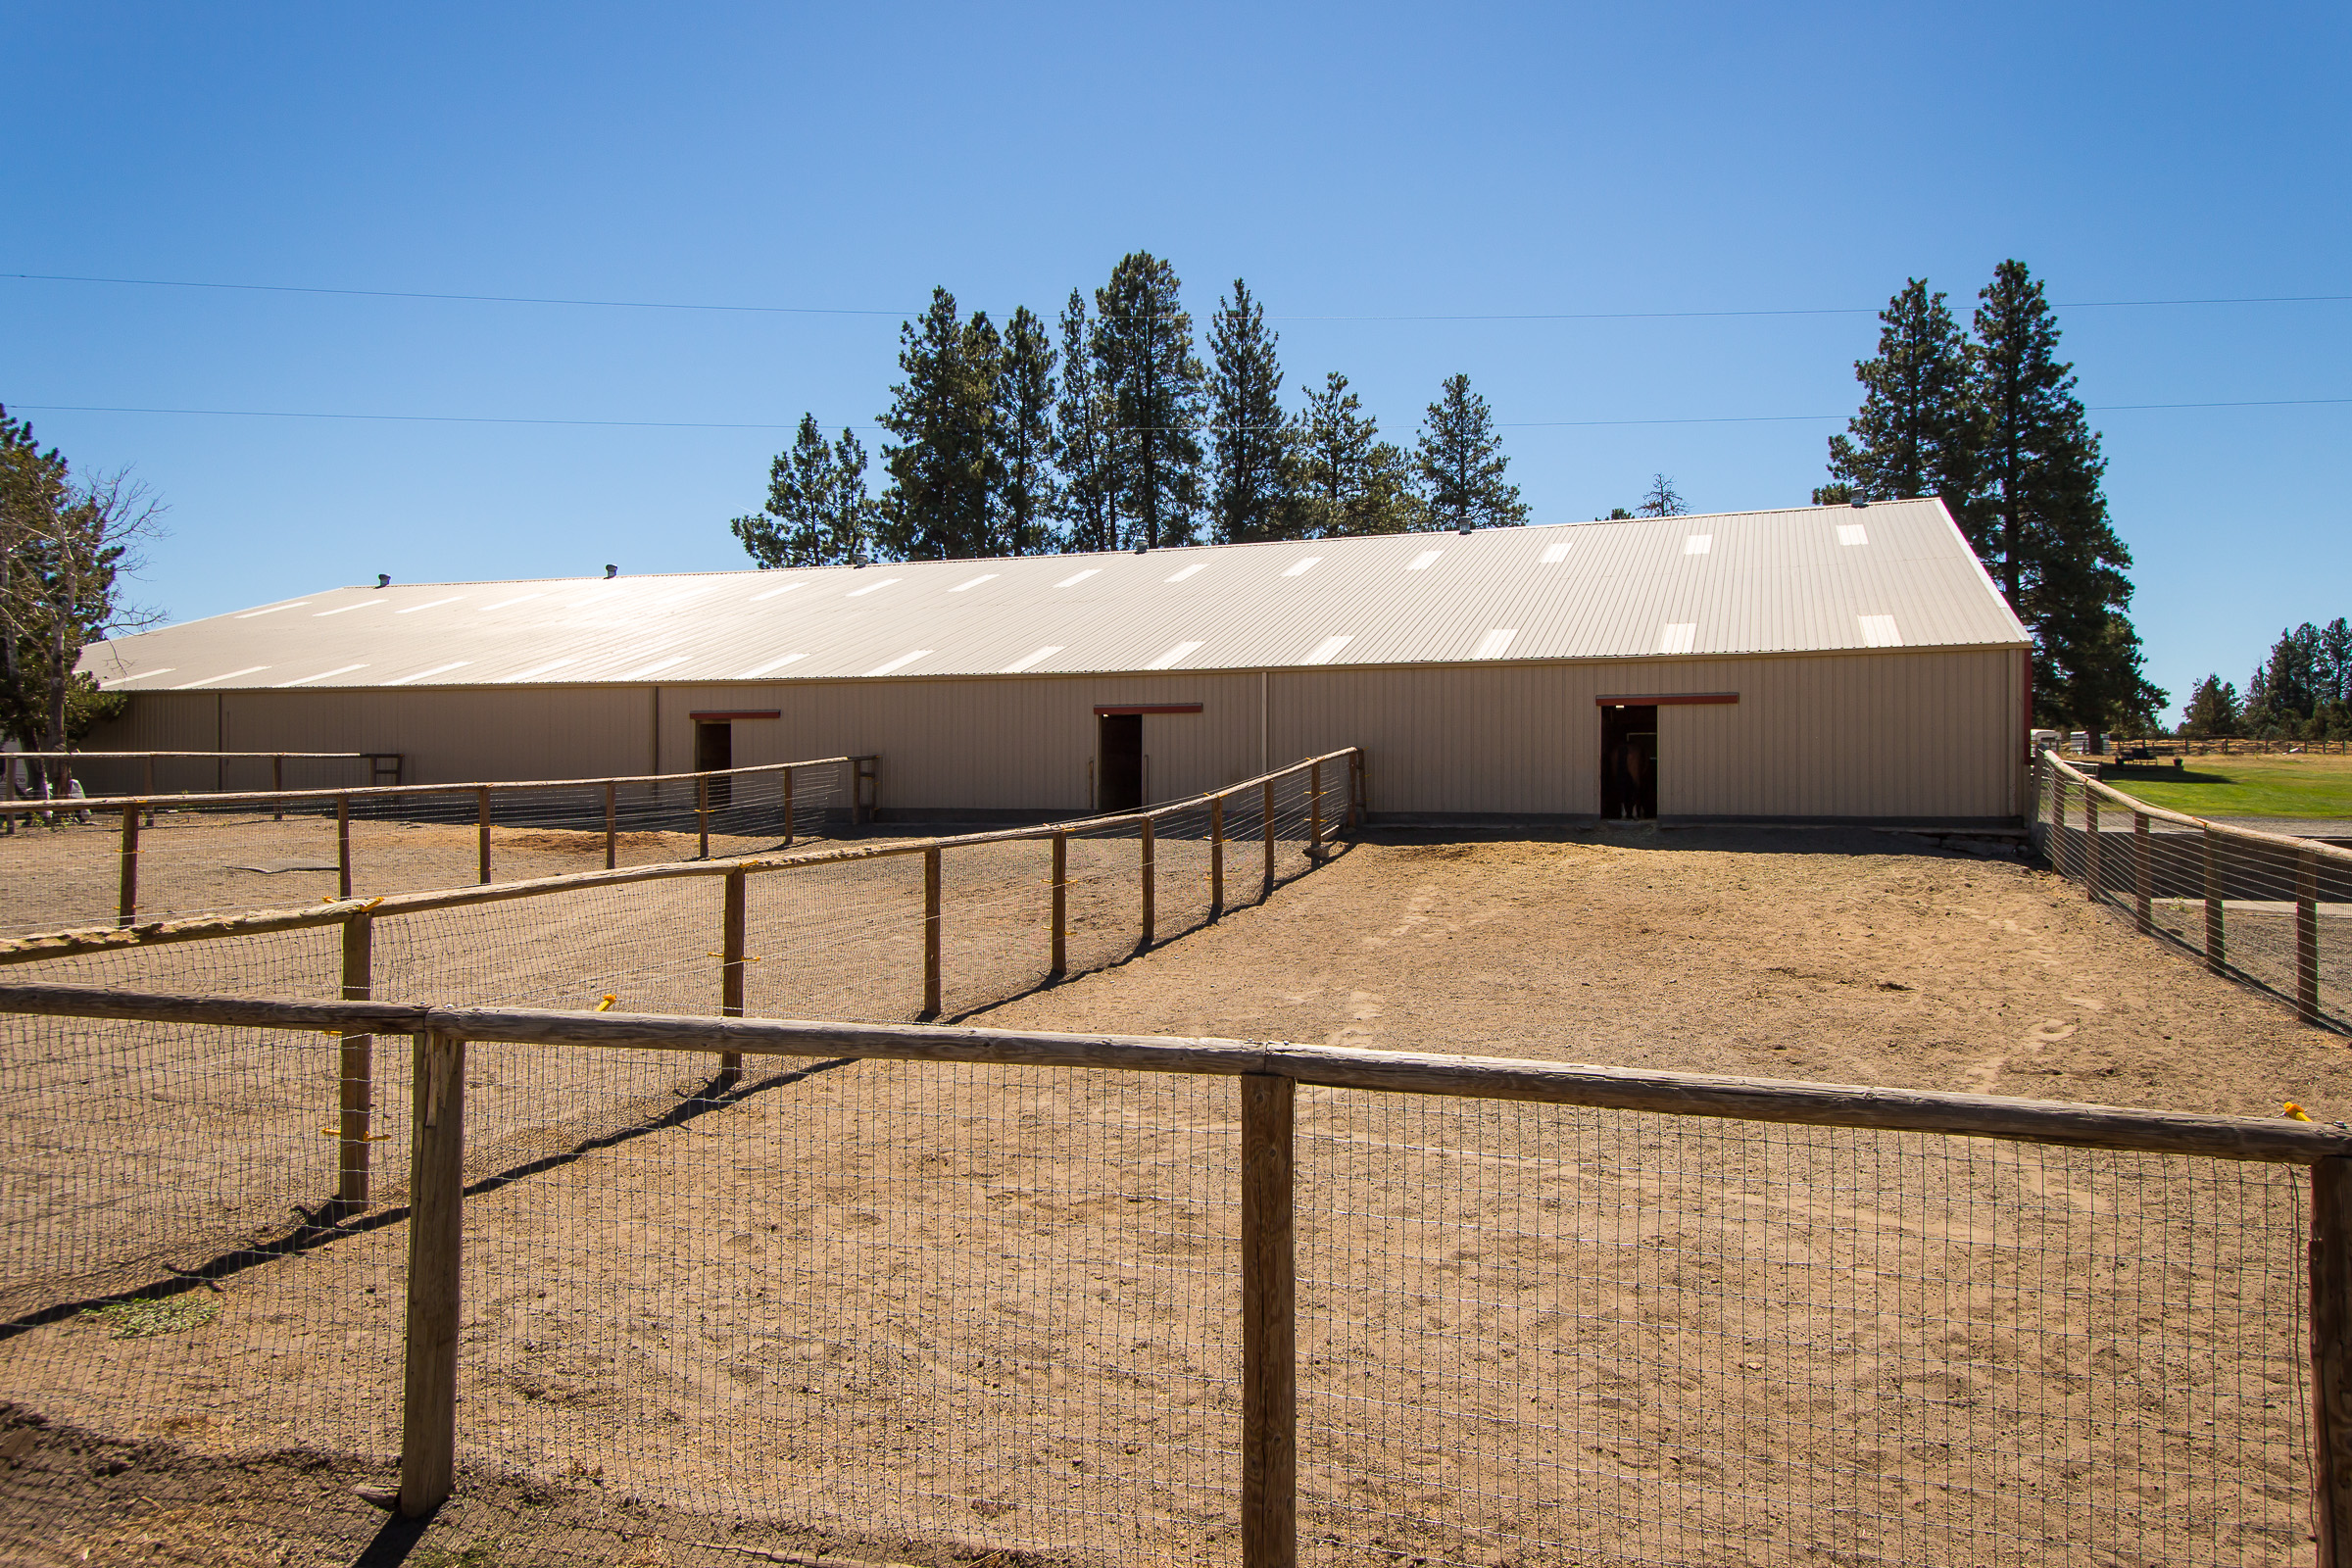 Stalls with in/out paddocks